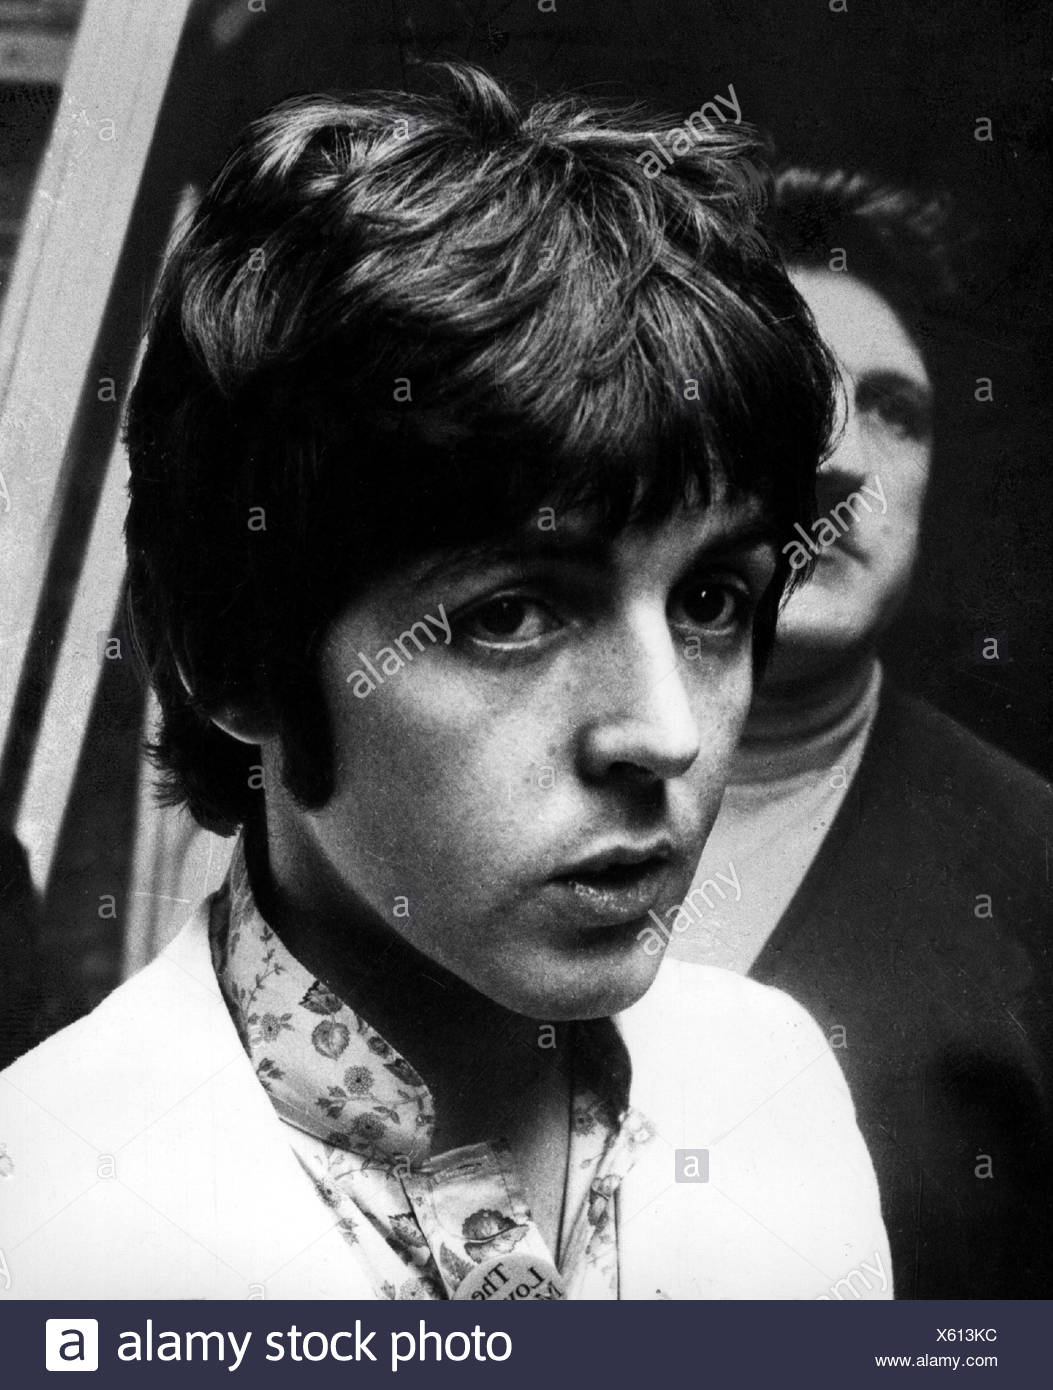 McCartney, Paul, * 18.6.1942, British singer and musician, band, 'The Beatles', portrait, 1960s, , Additional-Rights-Clearances-NA - Stock Image